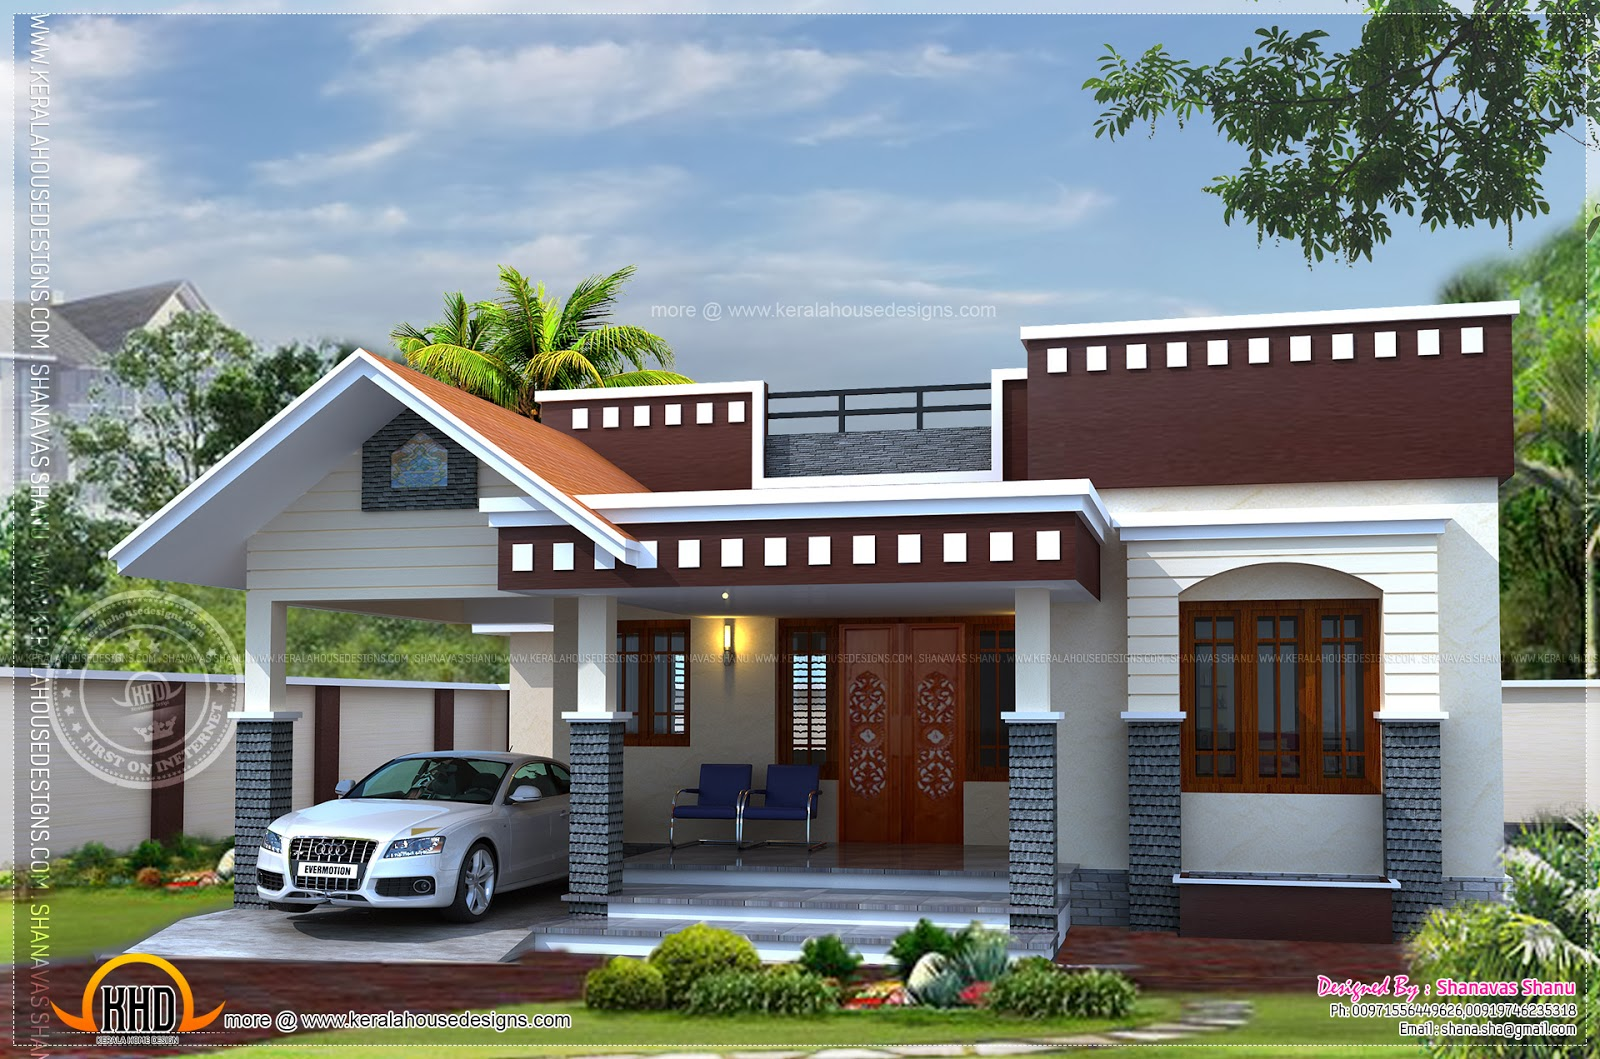 Home plan of small house kerala home design and floor plans for Small house images in kerala